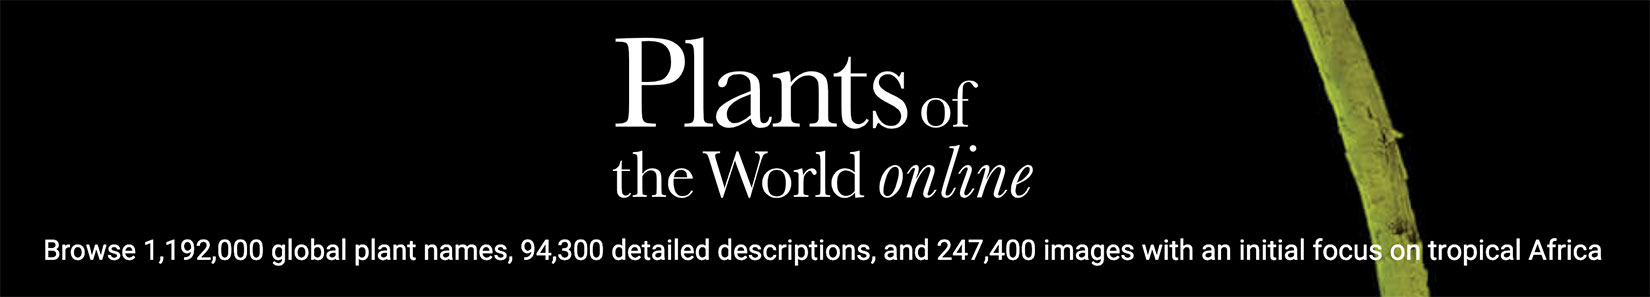 plants-of-the-world-online-banner